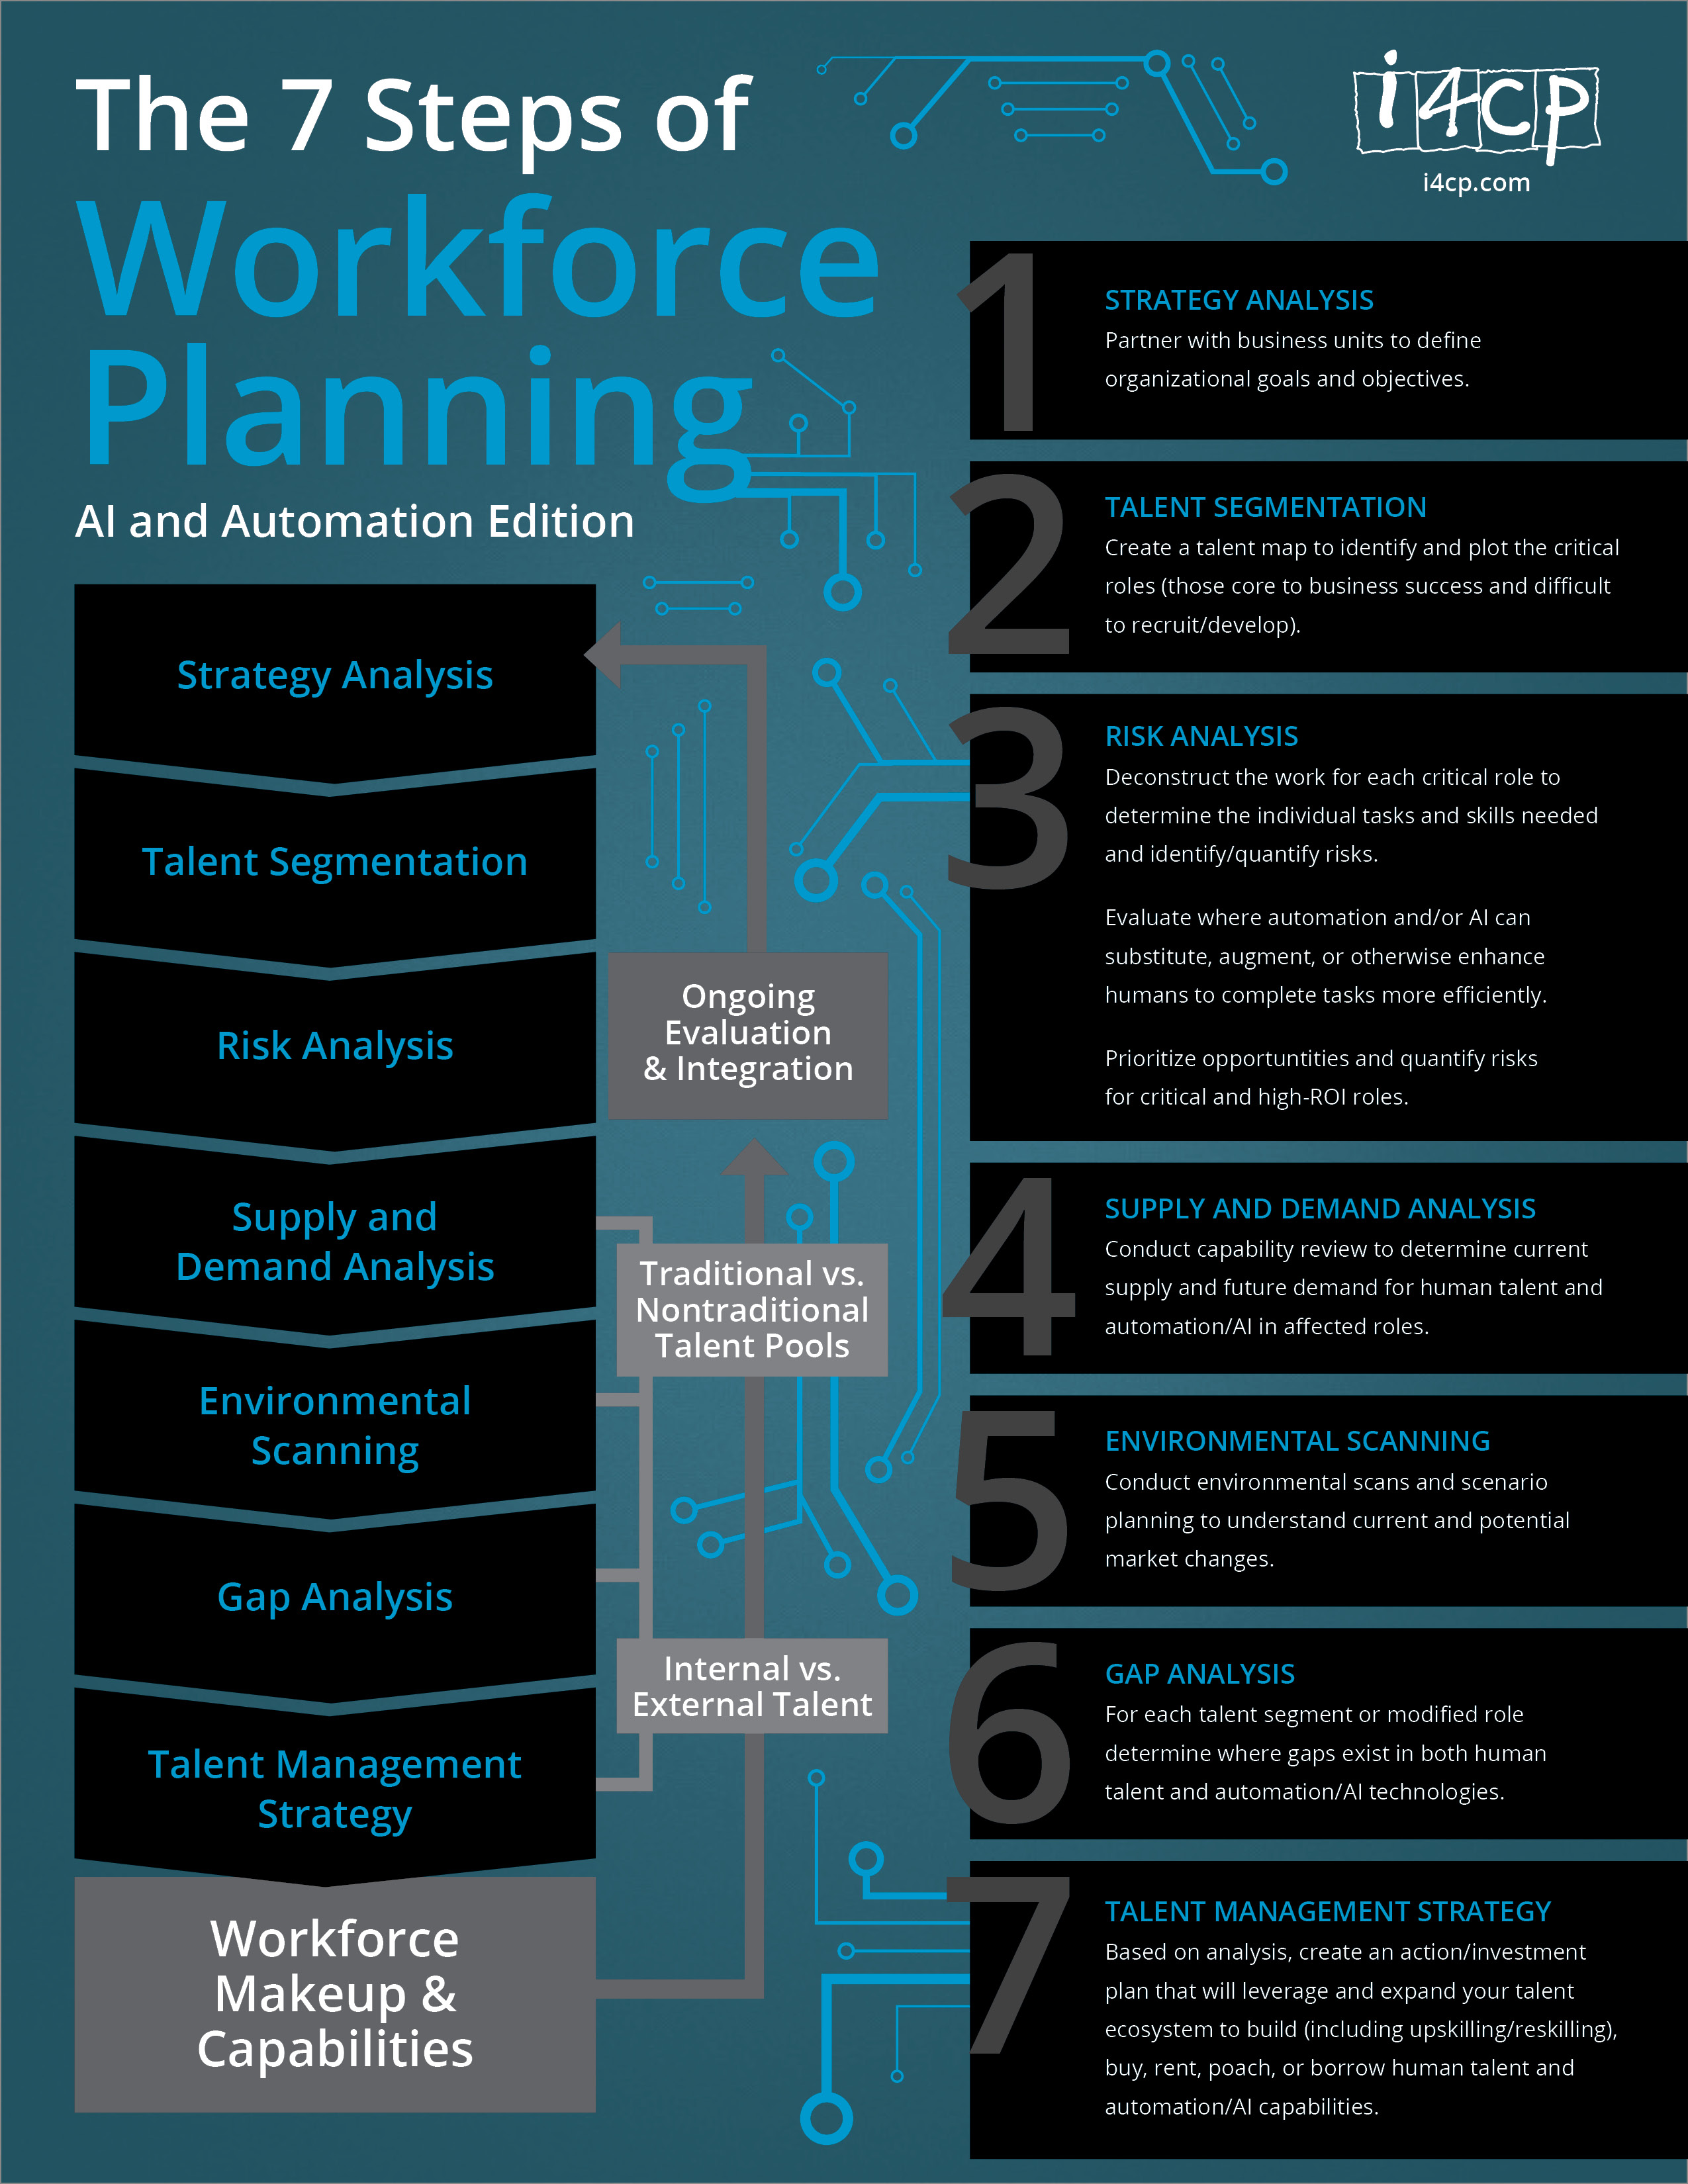 7 Steps of Workforce Planning